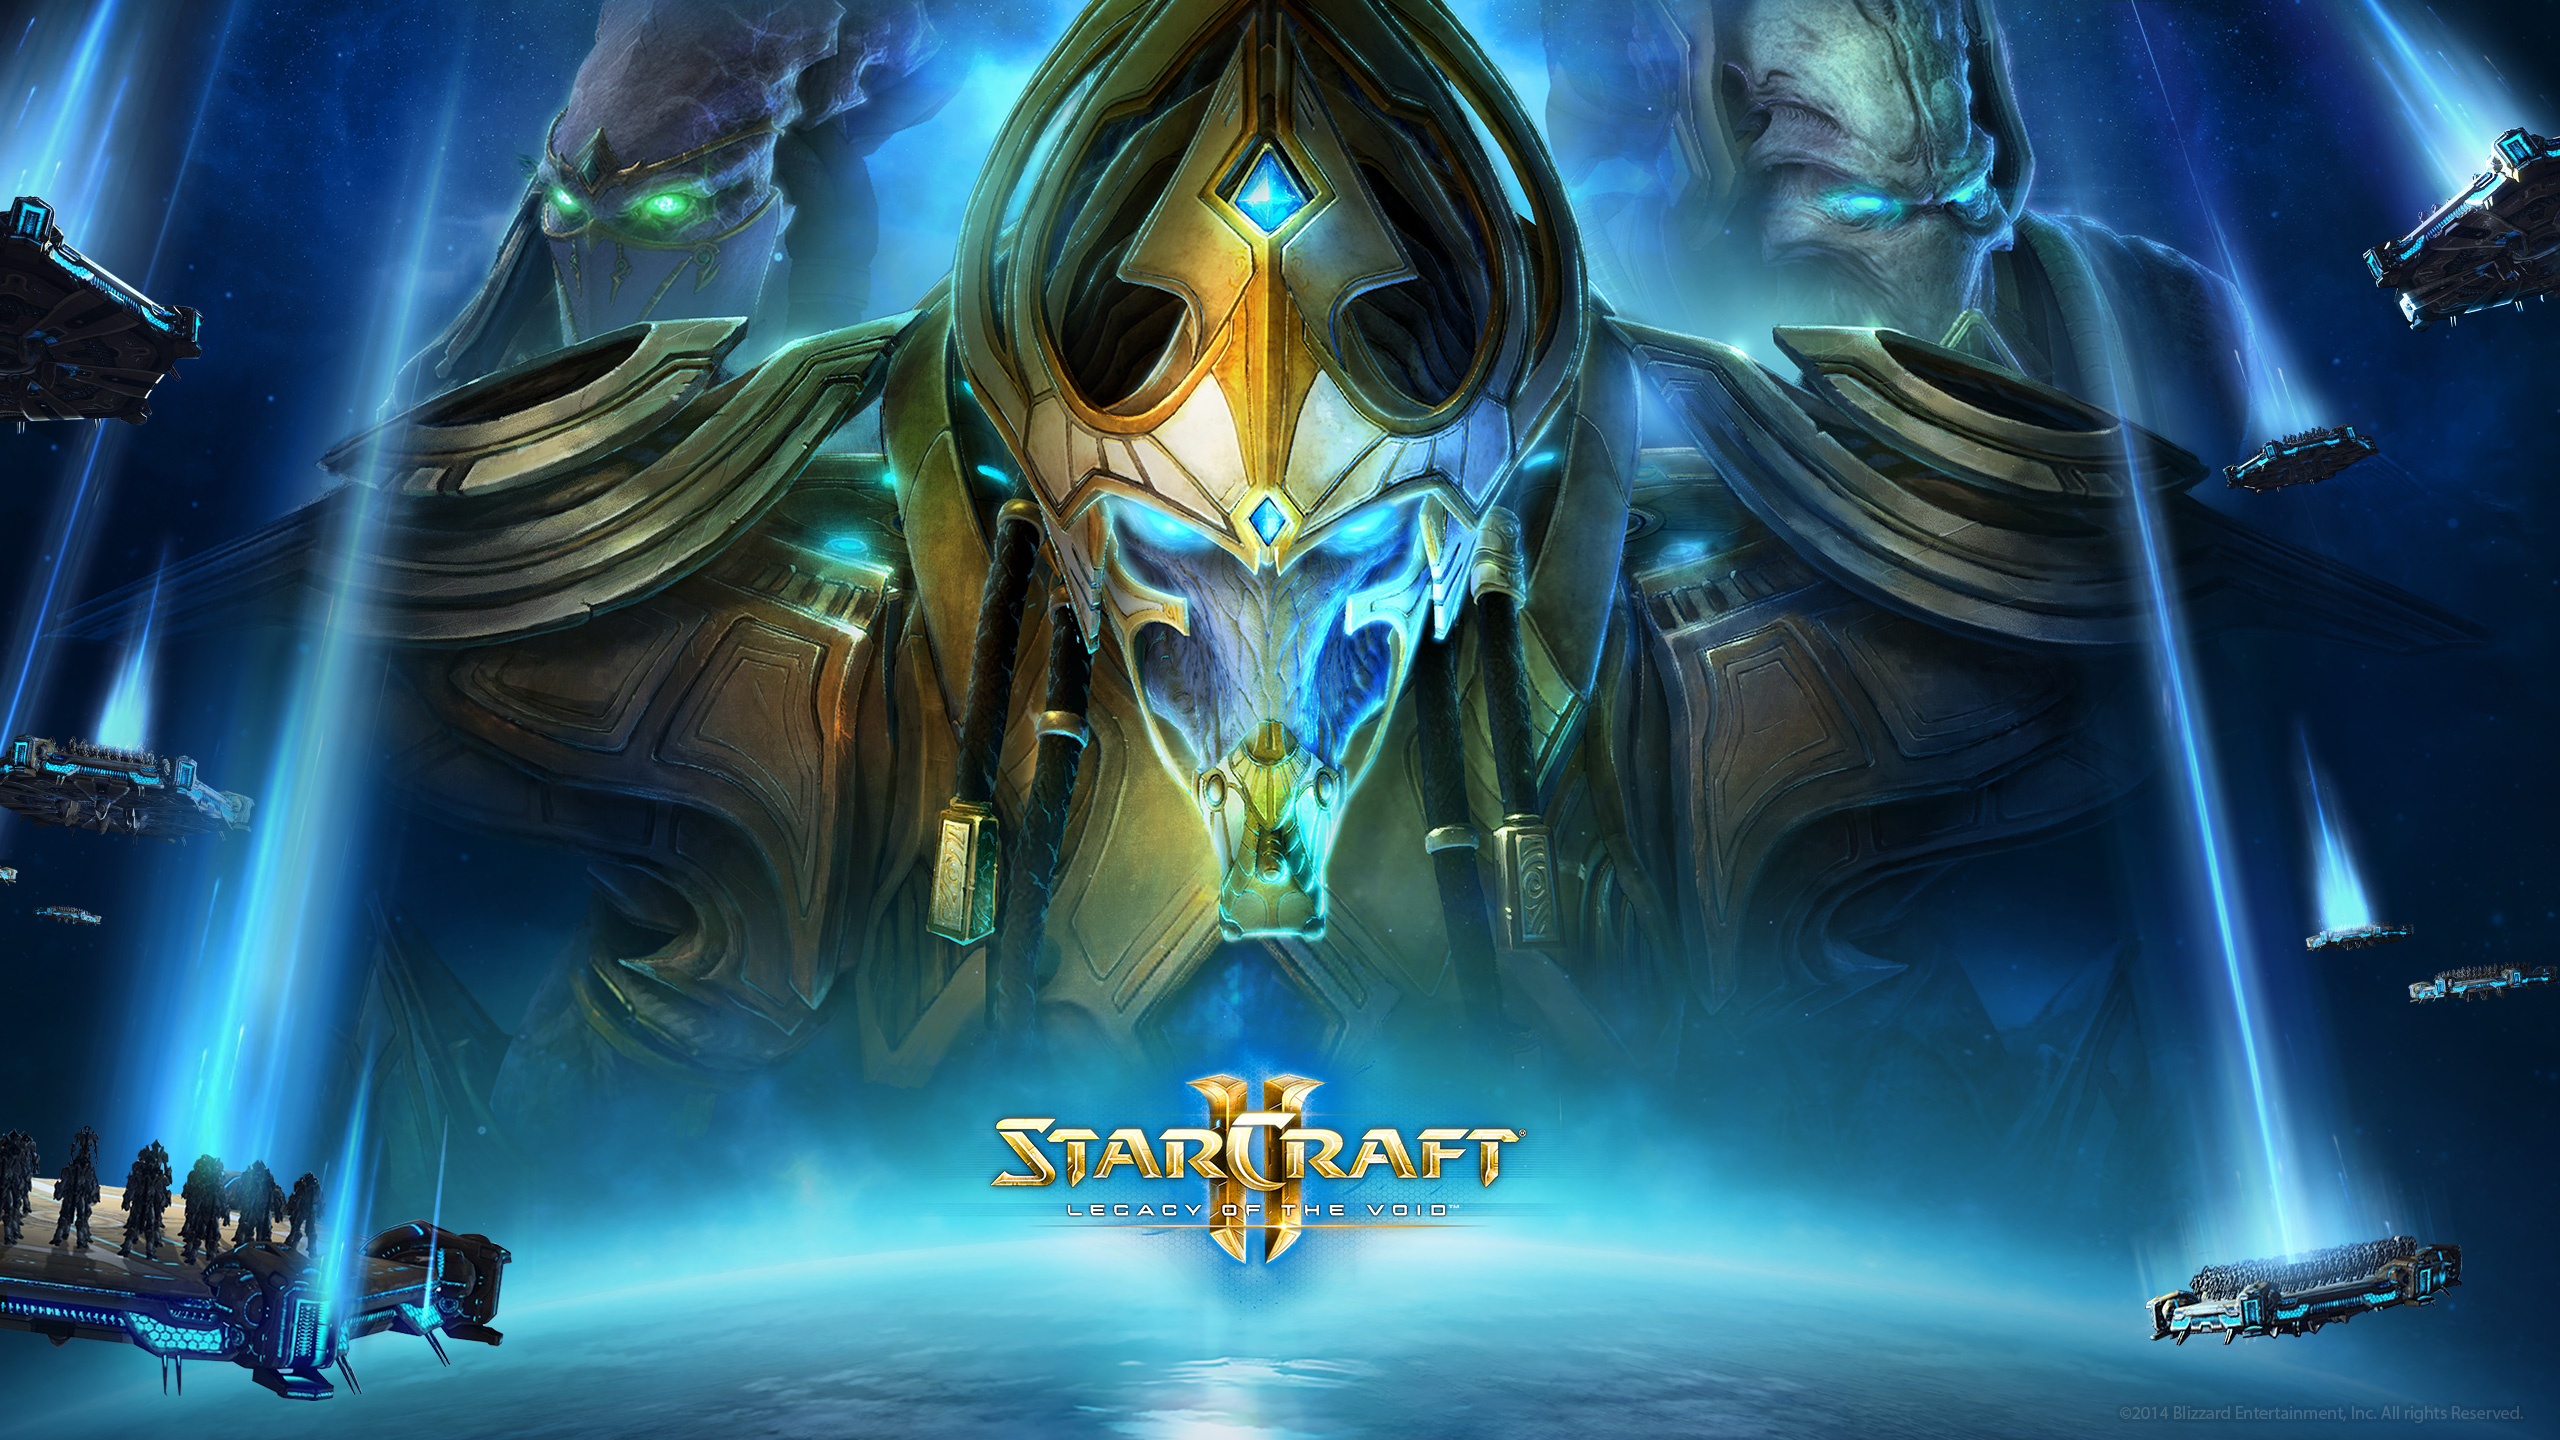 Starcraft 2 Legacy of the Void wallpaper 1 2560x1440